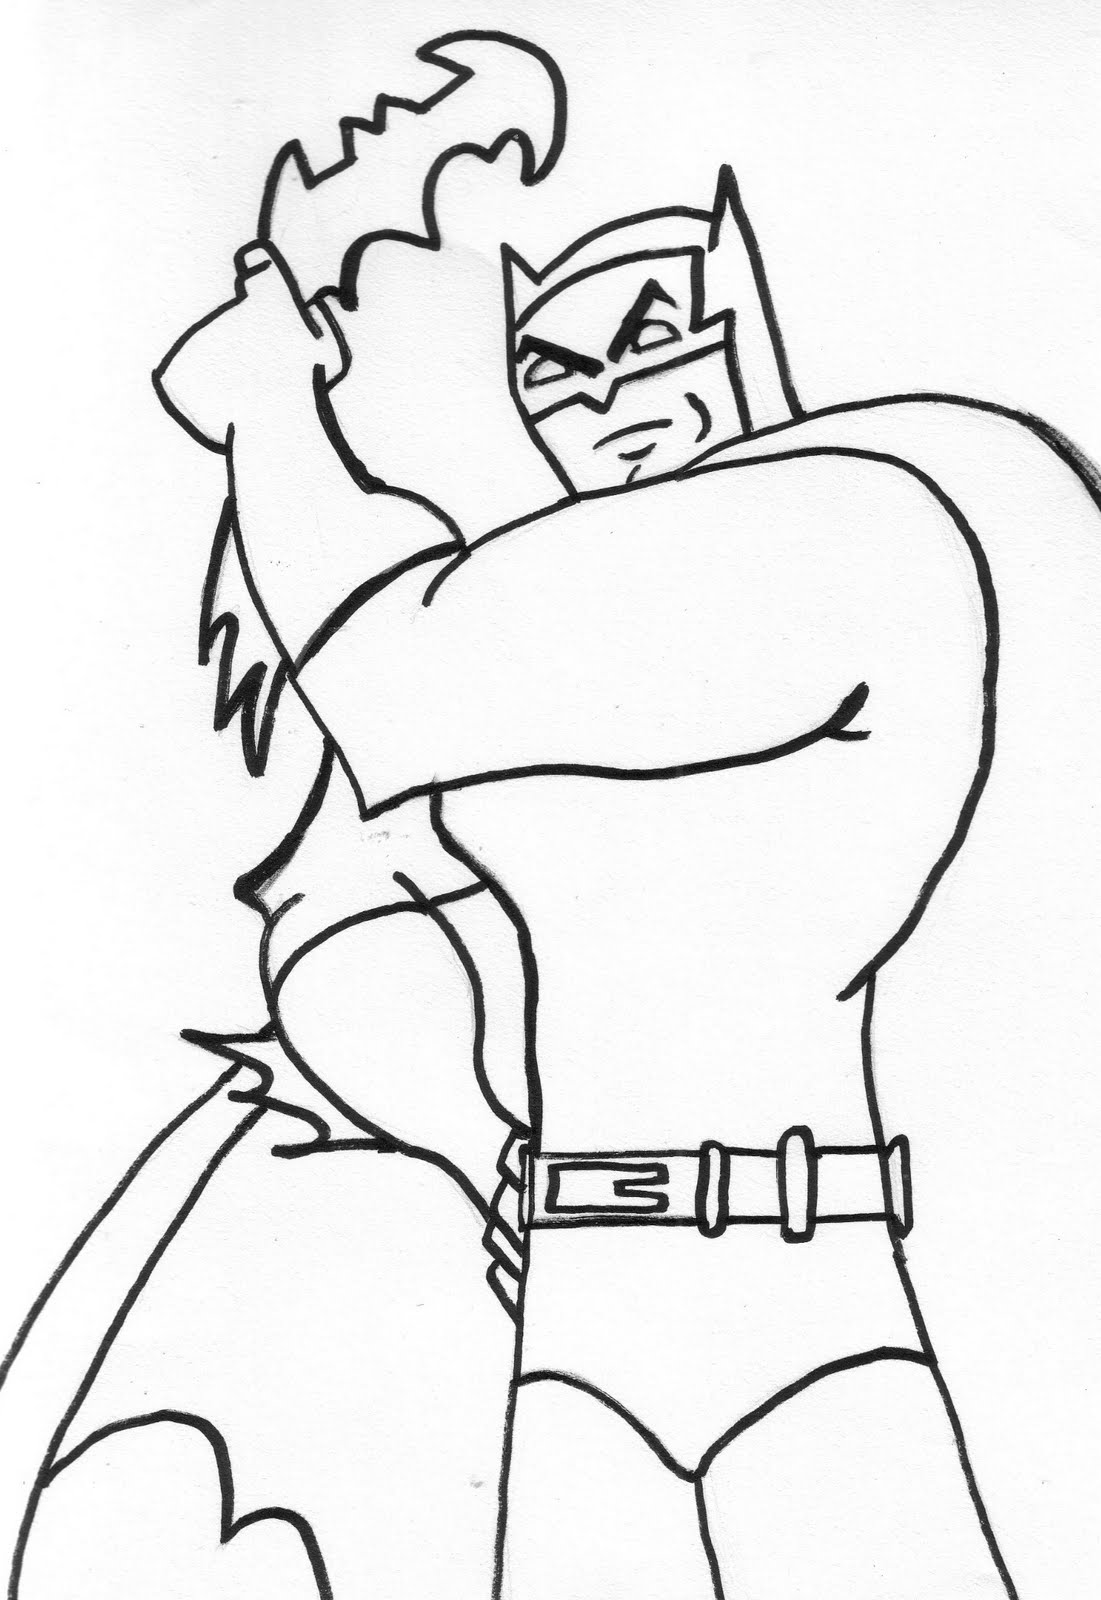 free downloadable coloring pages printable coloring pages march 2013 downloadable pages coloring free